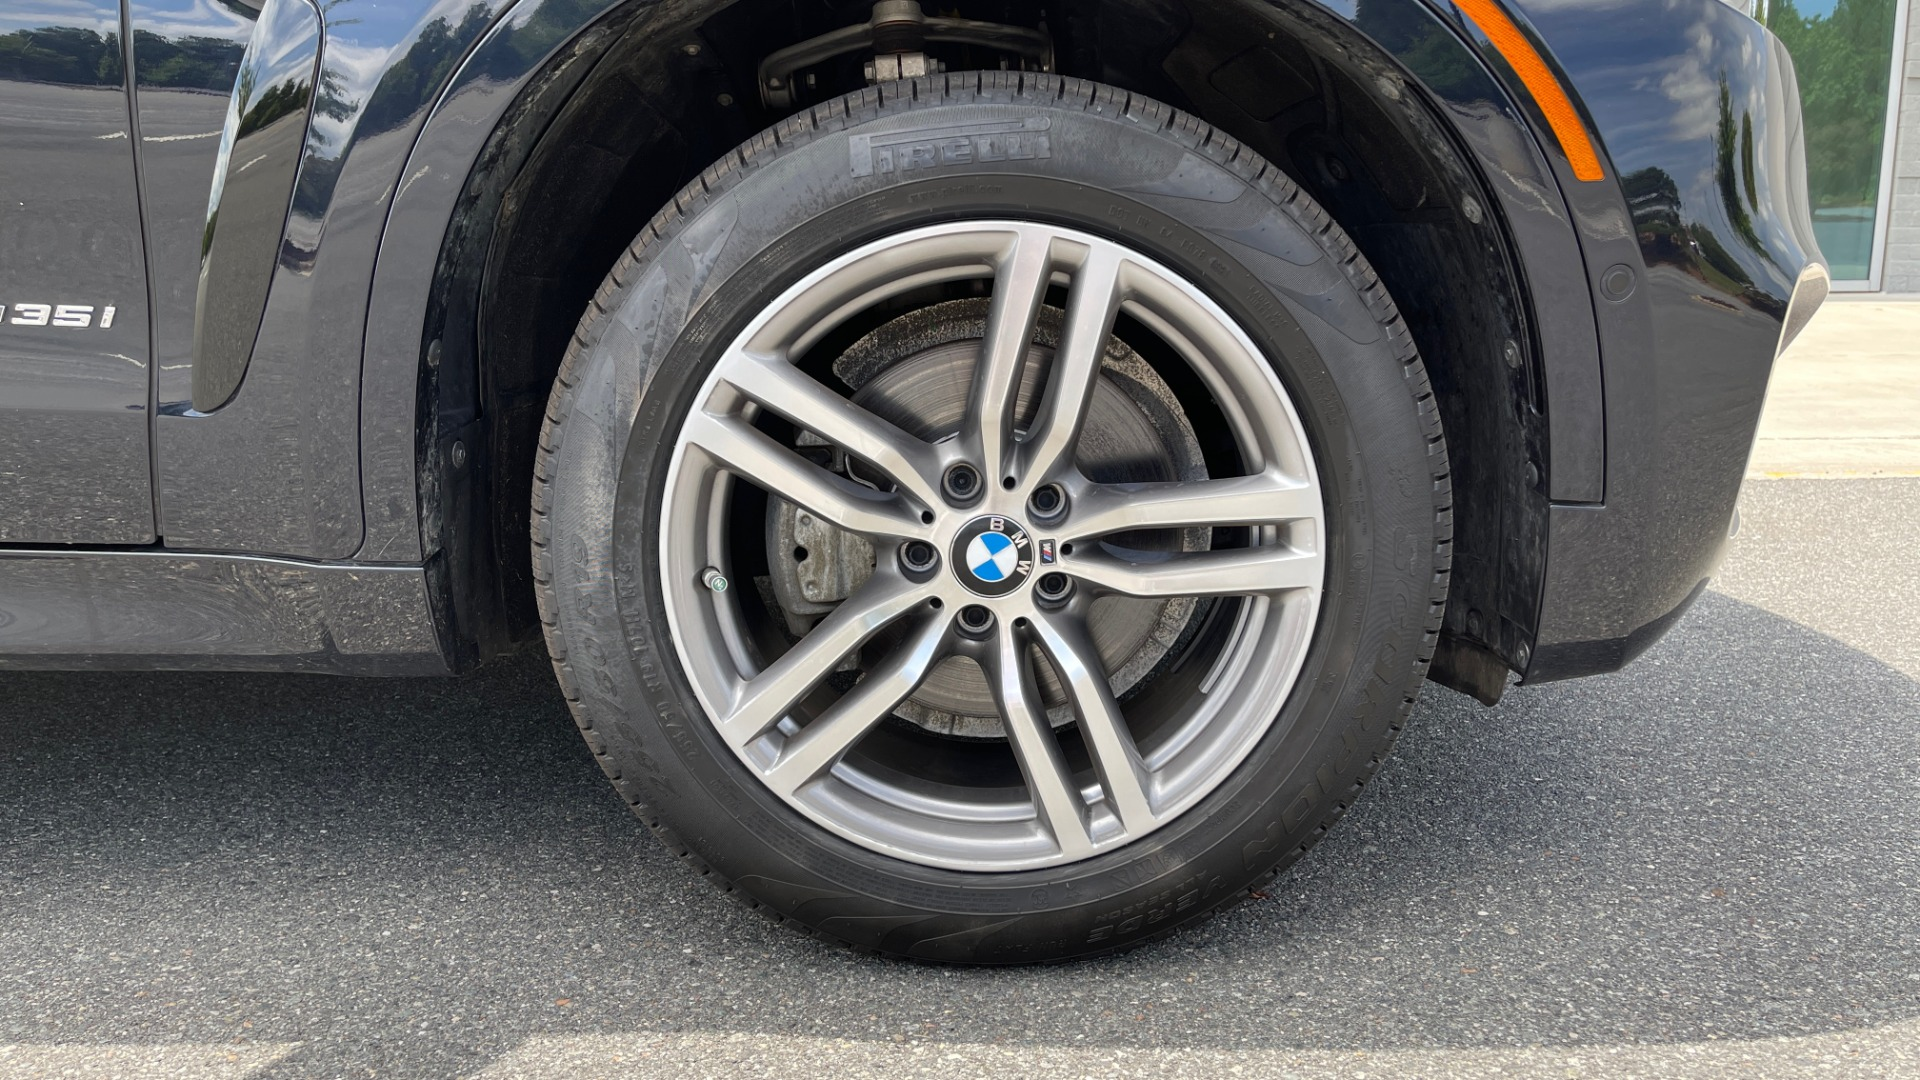 Used 2018 BMW X6 XDRIVE35I M-SPORT / DRVR ASST / PRK ASST / H/K SND / APPLE / WIRELESS CHARG for sale $51,995 at Formula Imports in Charlotte NC 28227 72